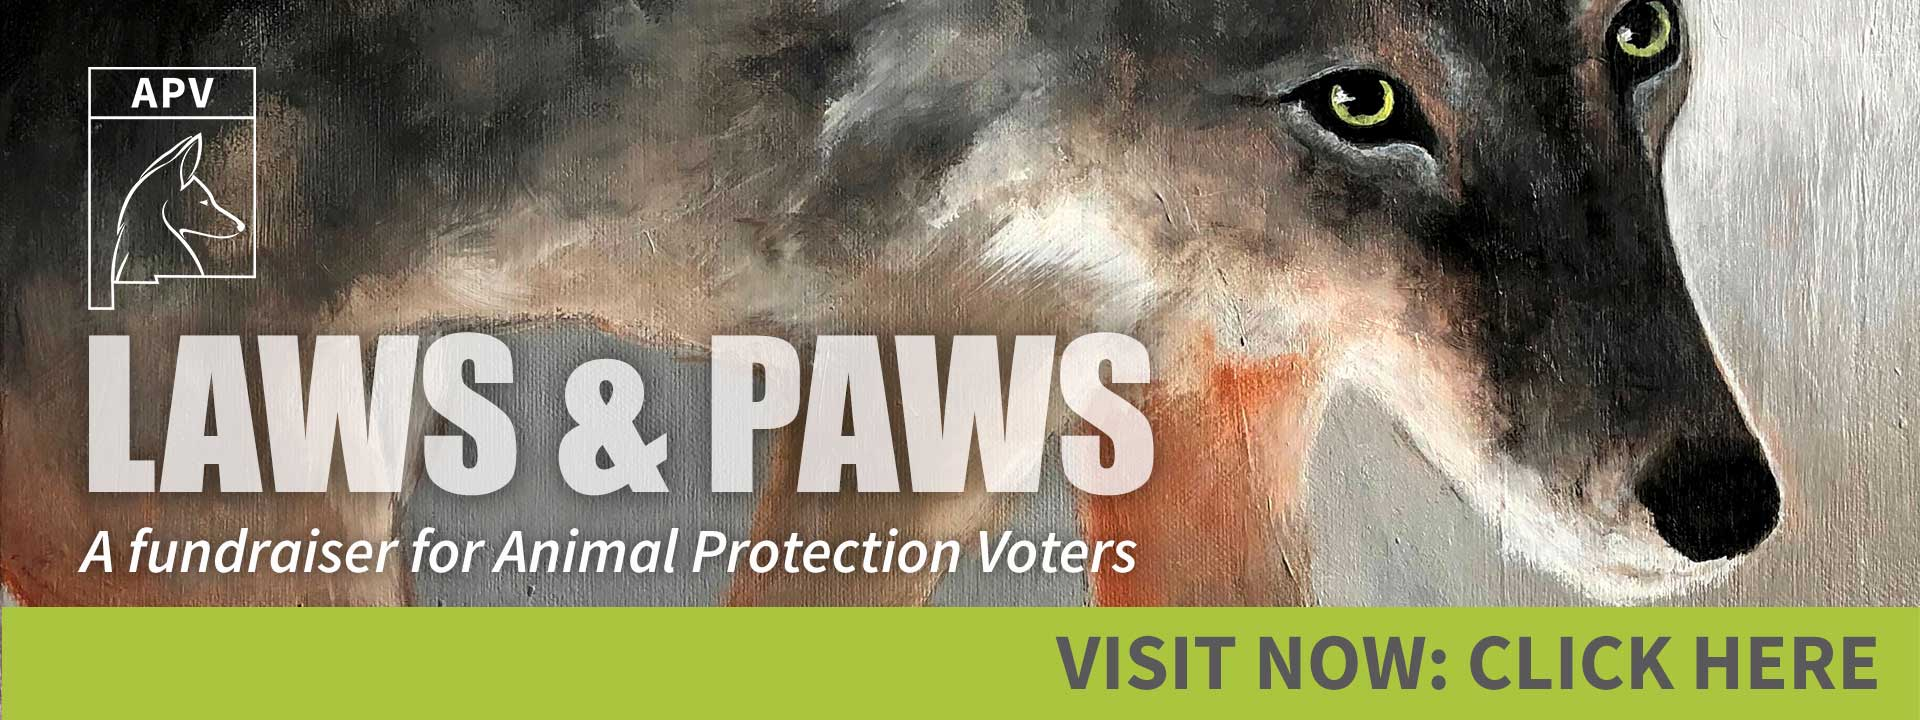 Laws & Paws 2021 - A Fundraiser for Animal Protection Voters